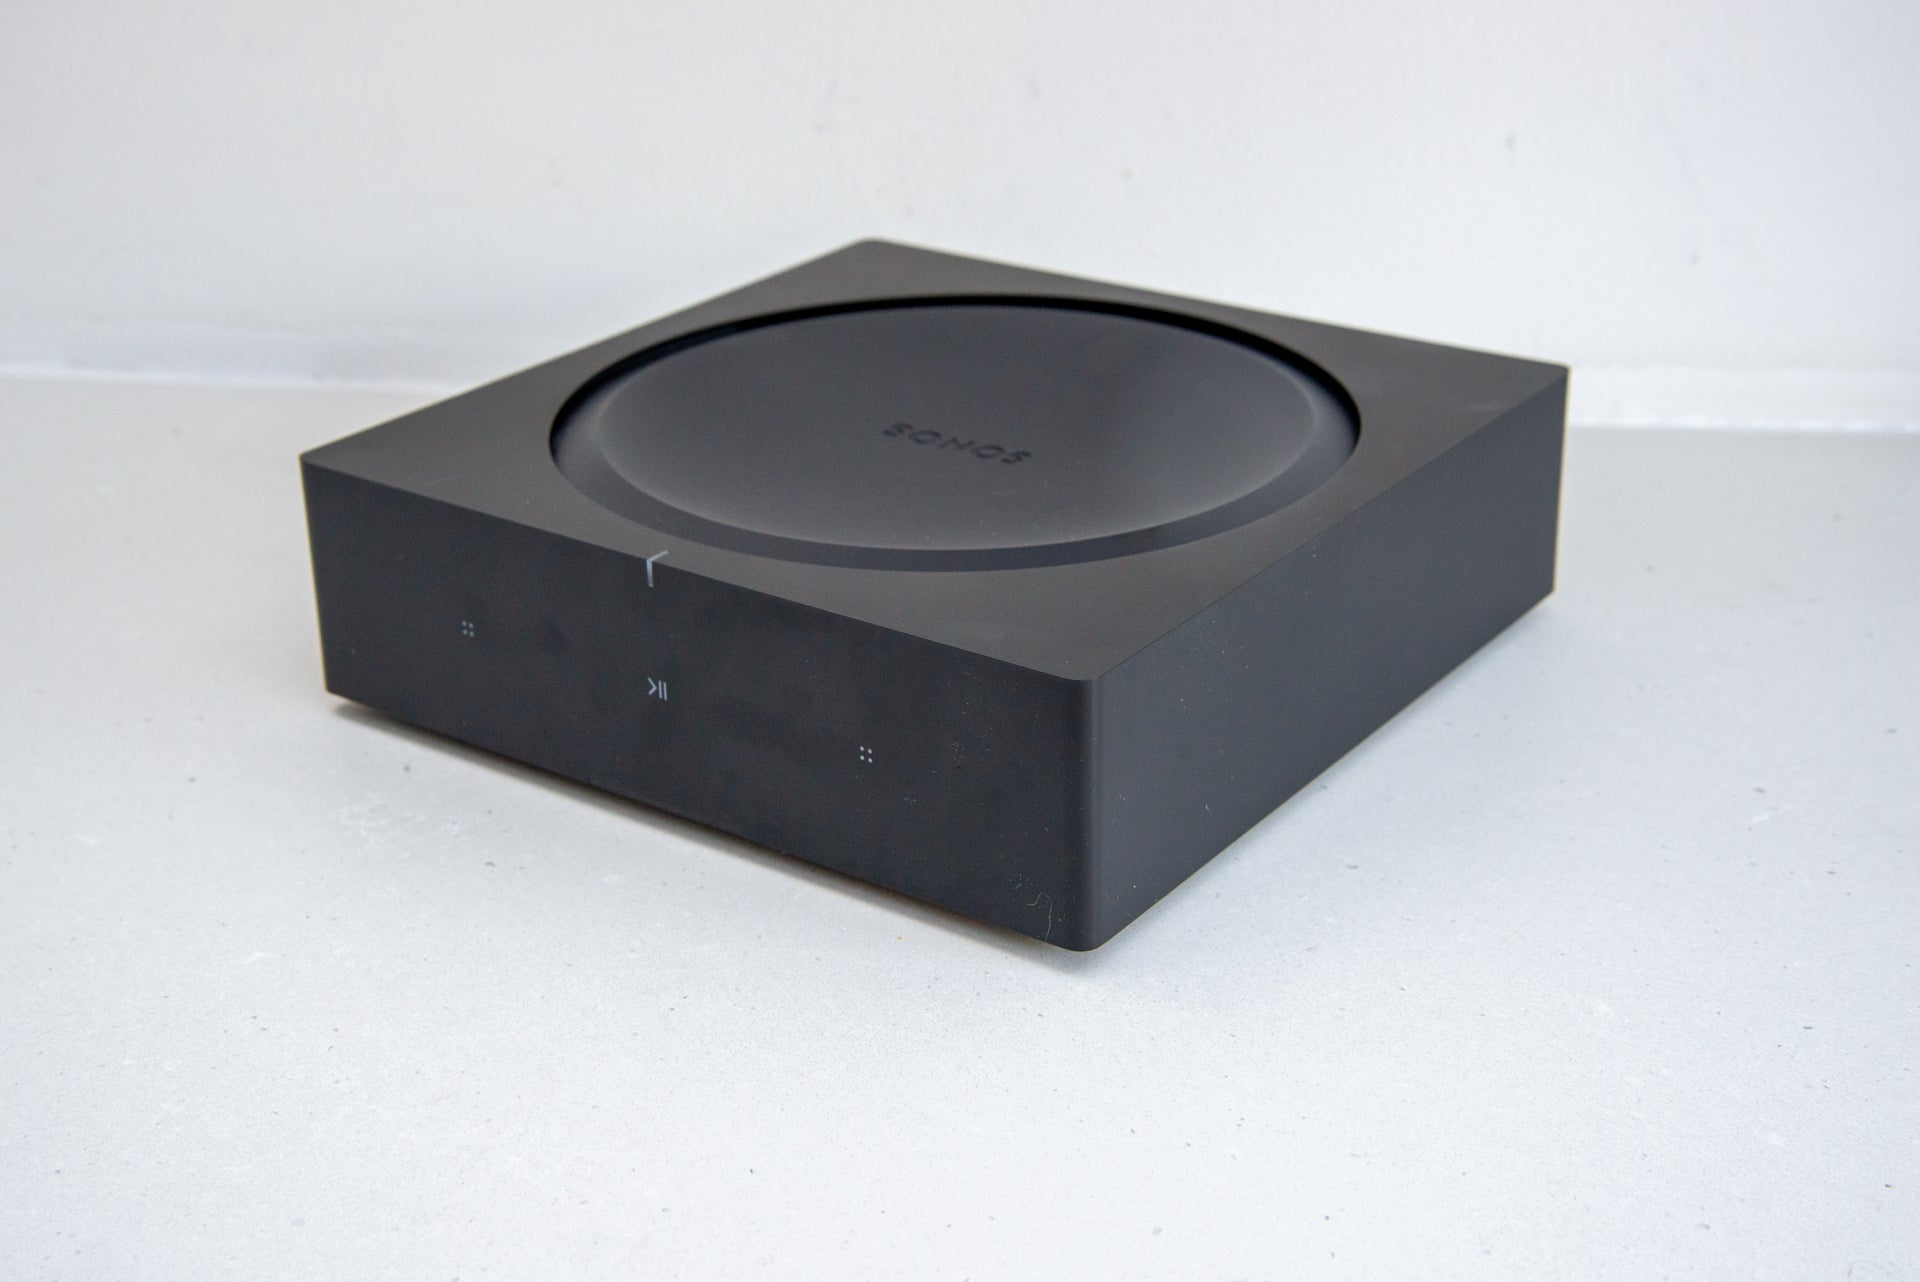 Sonos Amp side view